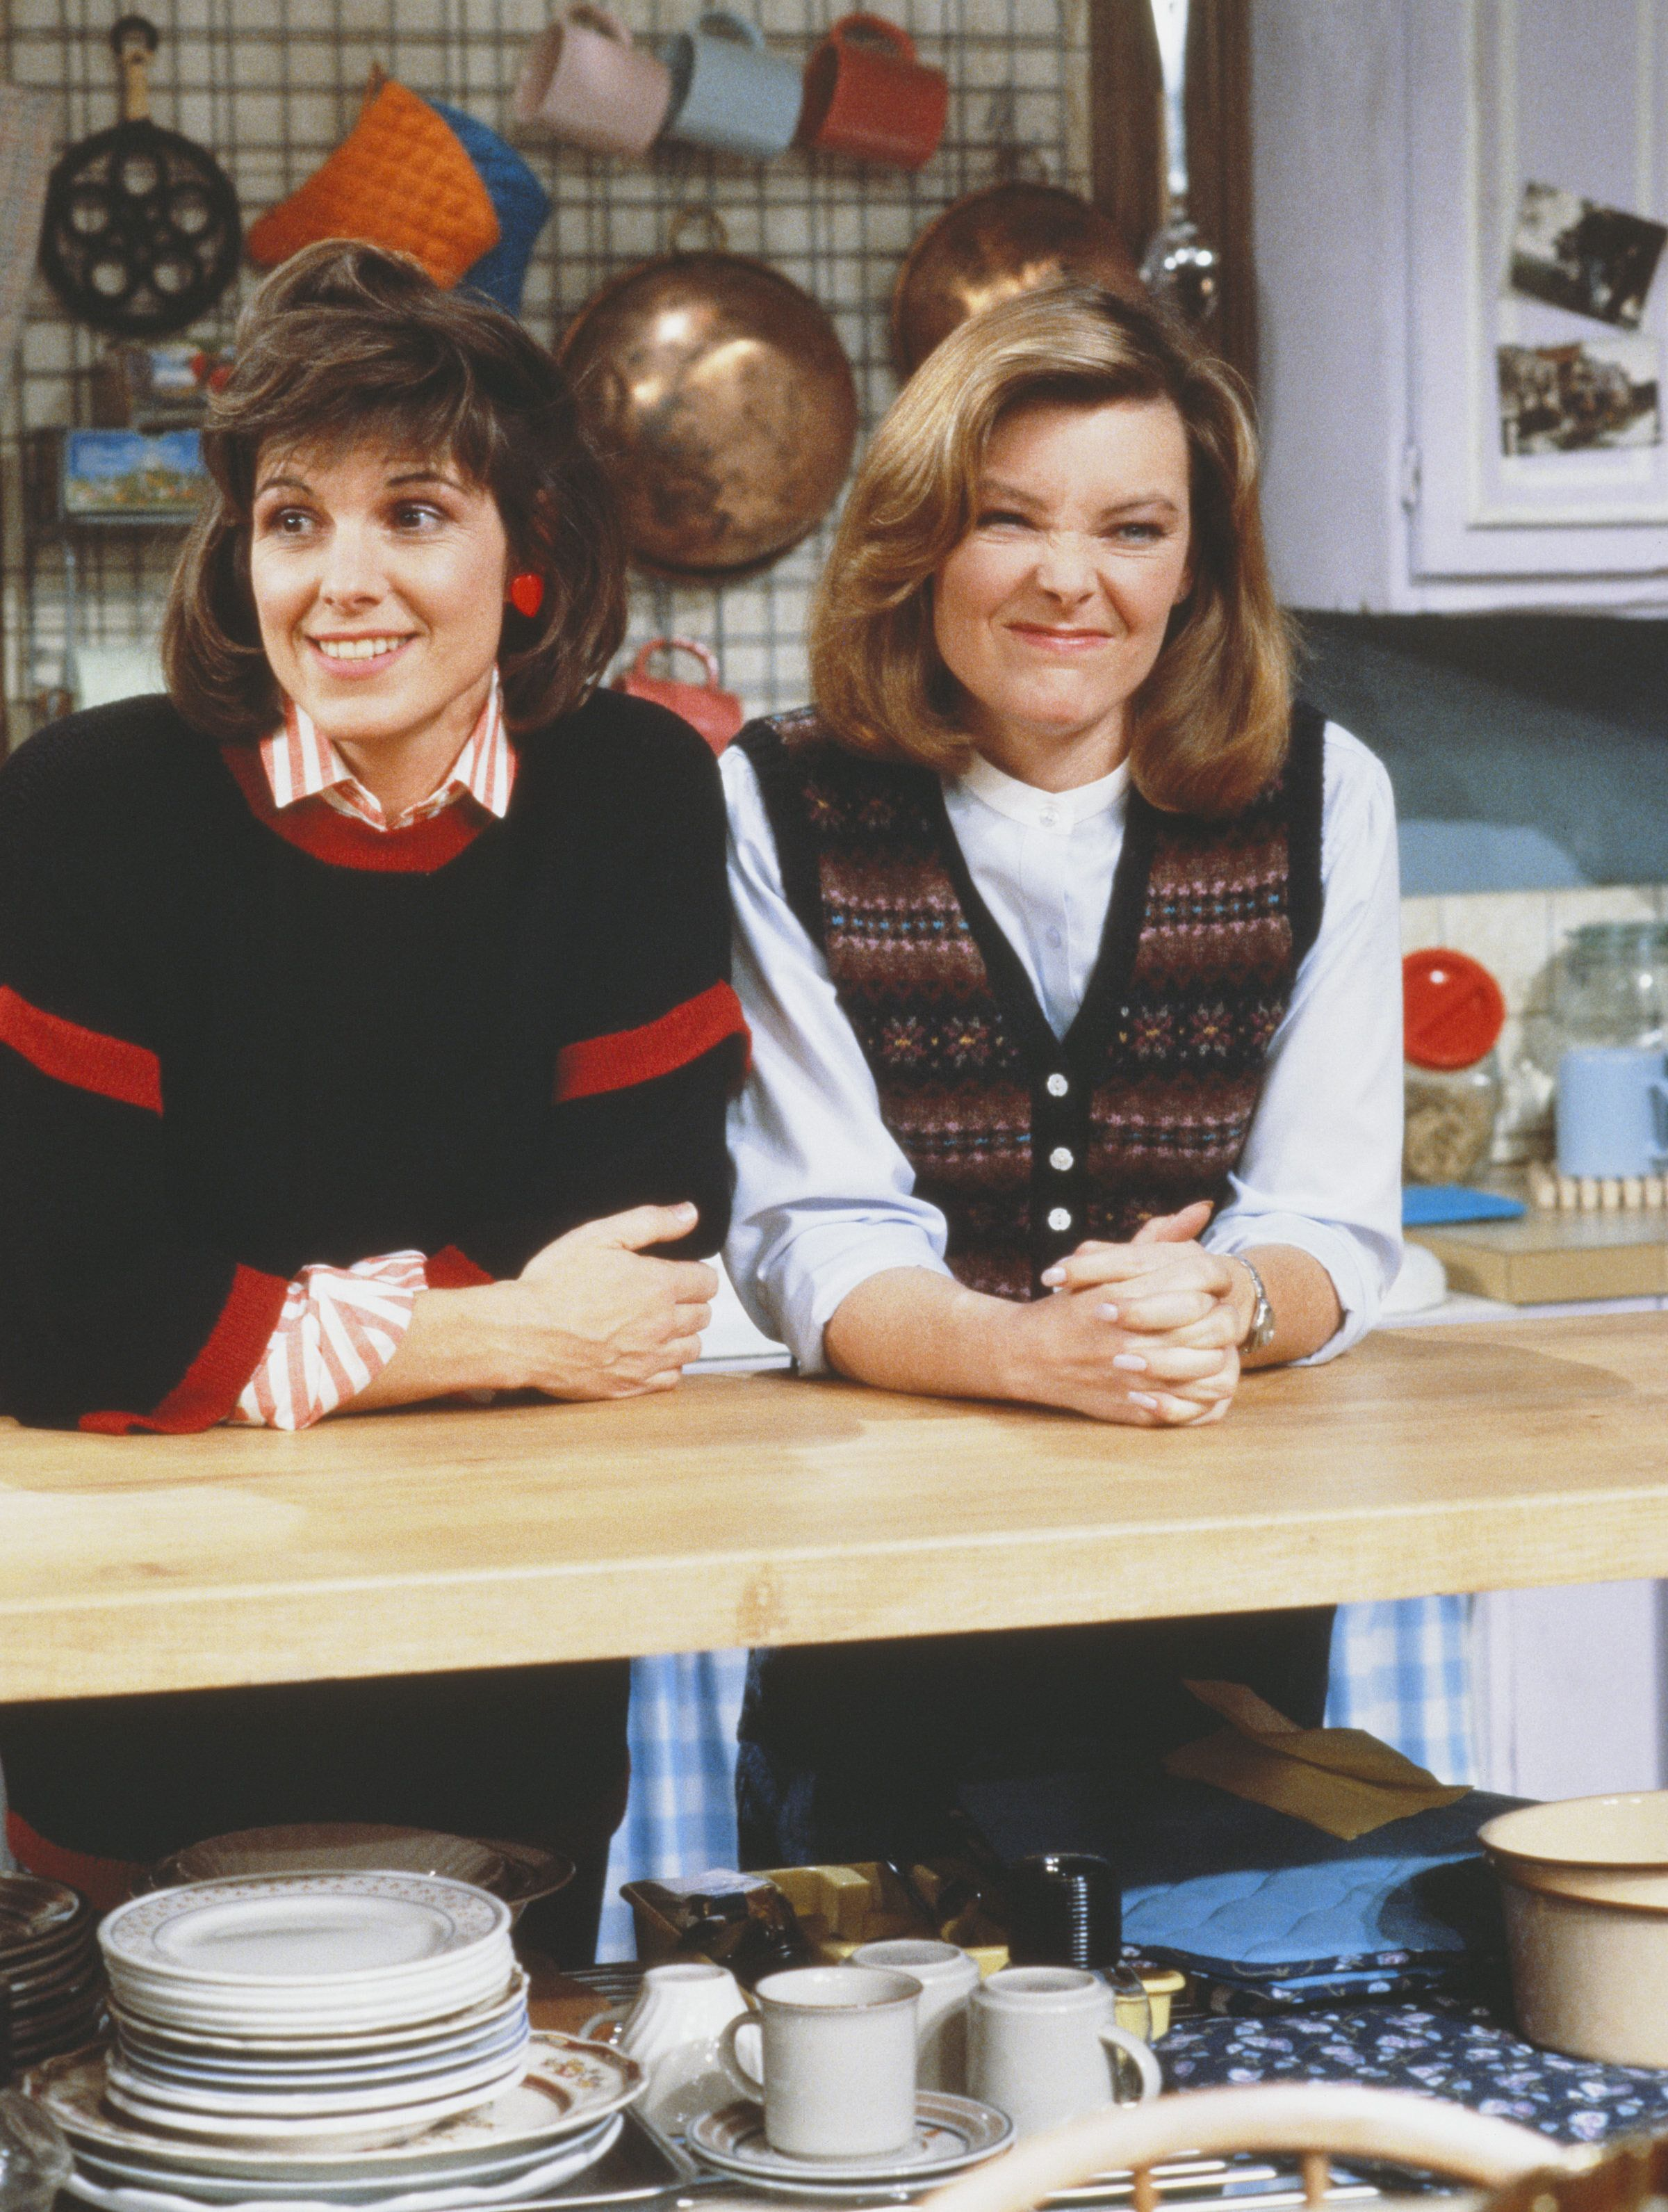 American actresses Susan Saint James (left) (as Kate McArdle) and Jane Curtin (as Allie Lowell) lean against a kitchen counter in a still from the CBS television sitcom 'Kate & Allie,' New York, New York, 1985. (Photo by CBS Photo Archive/Getty Images)